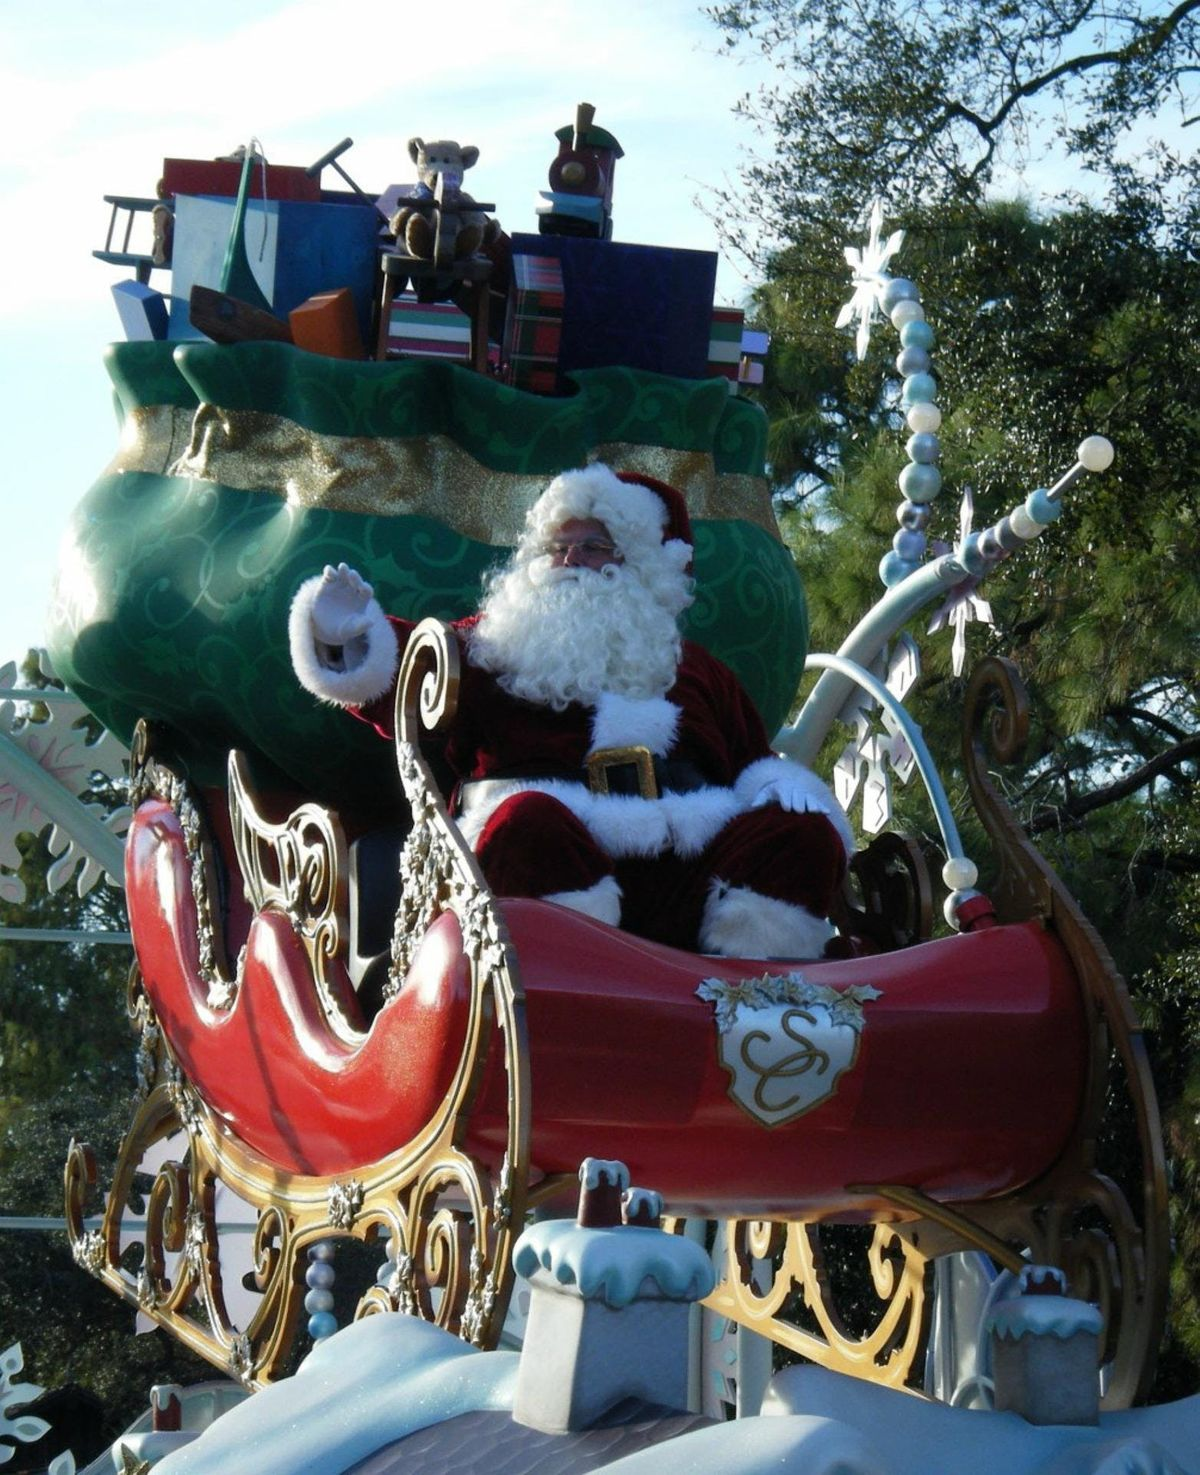 Town of Cary Christmas Parade 2018 at East Circle Dr., Cary